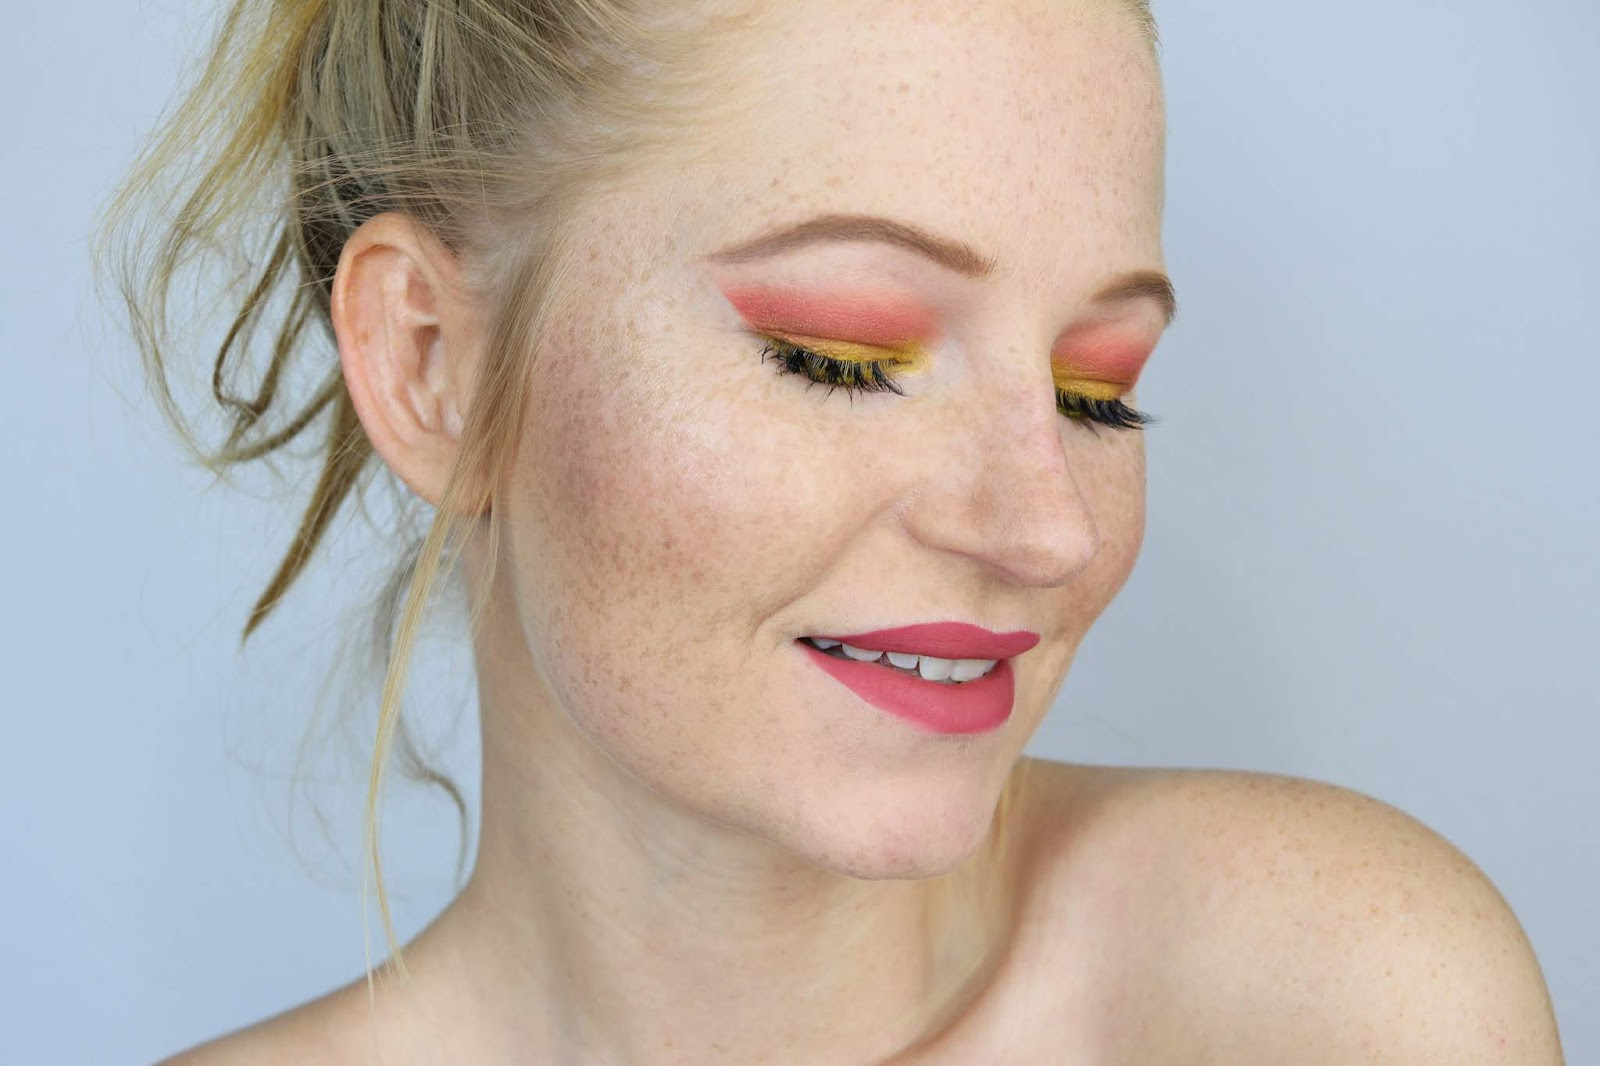 amu, beauty blogger hamburg, colourpop, eyeshadow, frühling, lidschatten, lidschatten 1×1 orange gelb, liquid lipstick, make-up, orange yellow, sommer make-up, summer look, talasia.de blogparade,